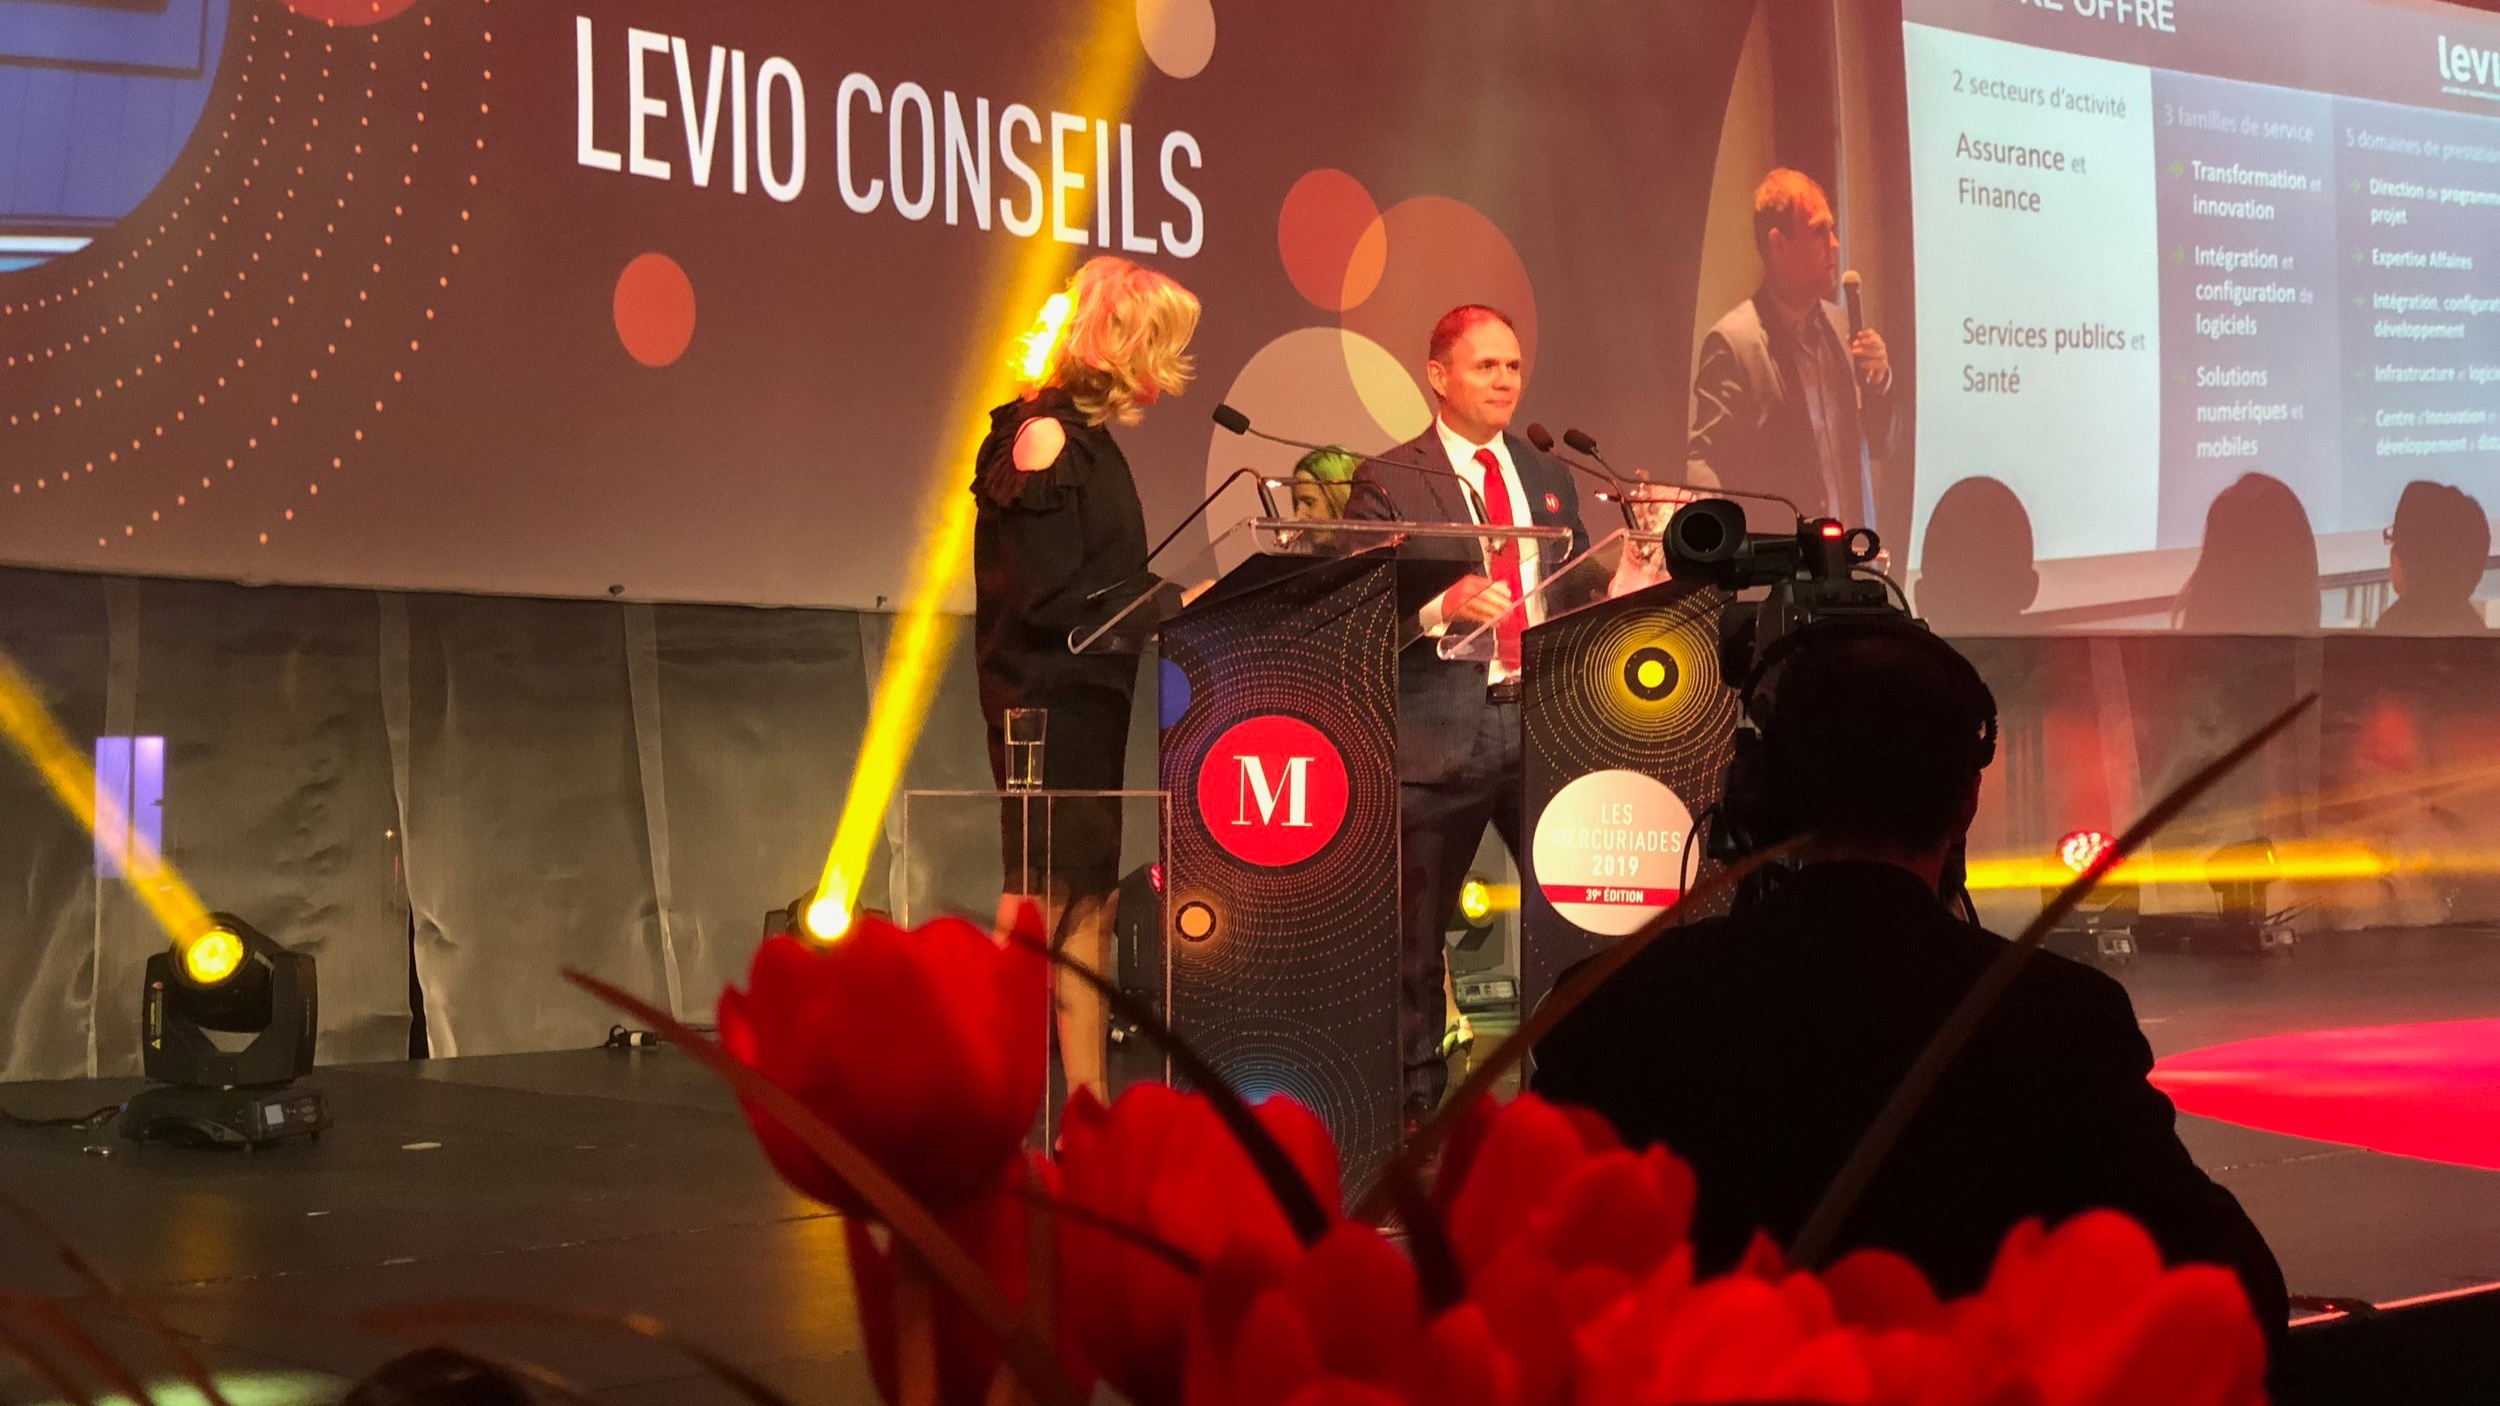 Winner! Mercuriades 2019 - MONTREAL, April 29th, 2019Levio Consulting wins the Mercure Award for Outstanding Regional Economic Impact.